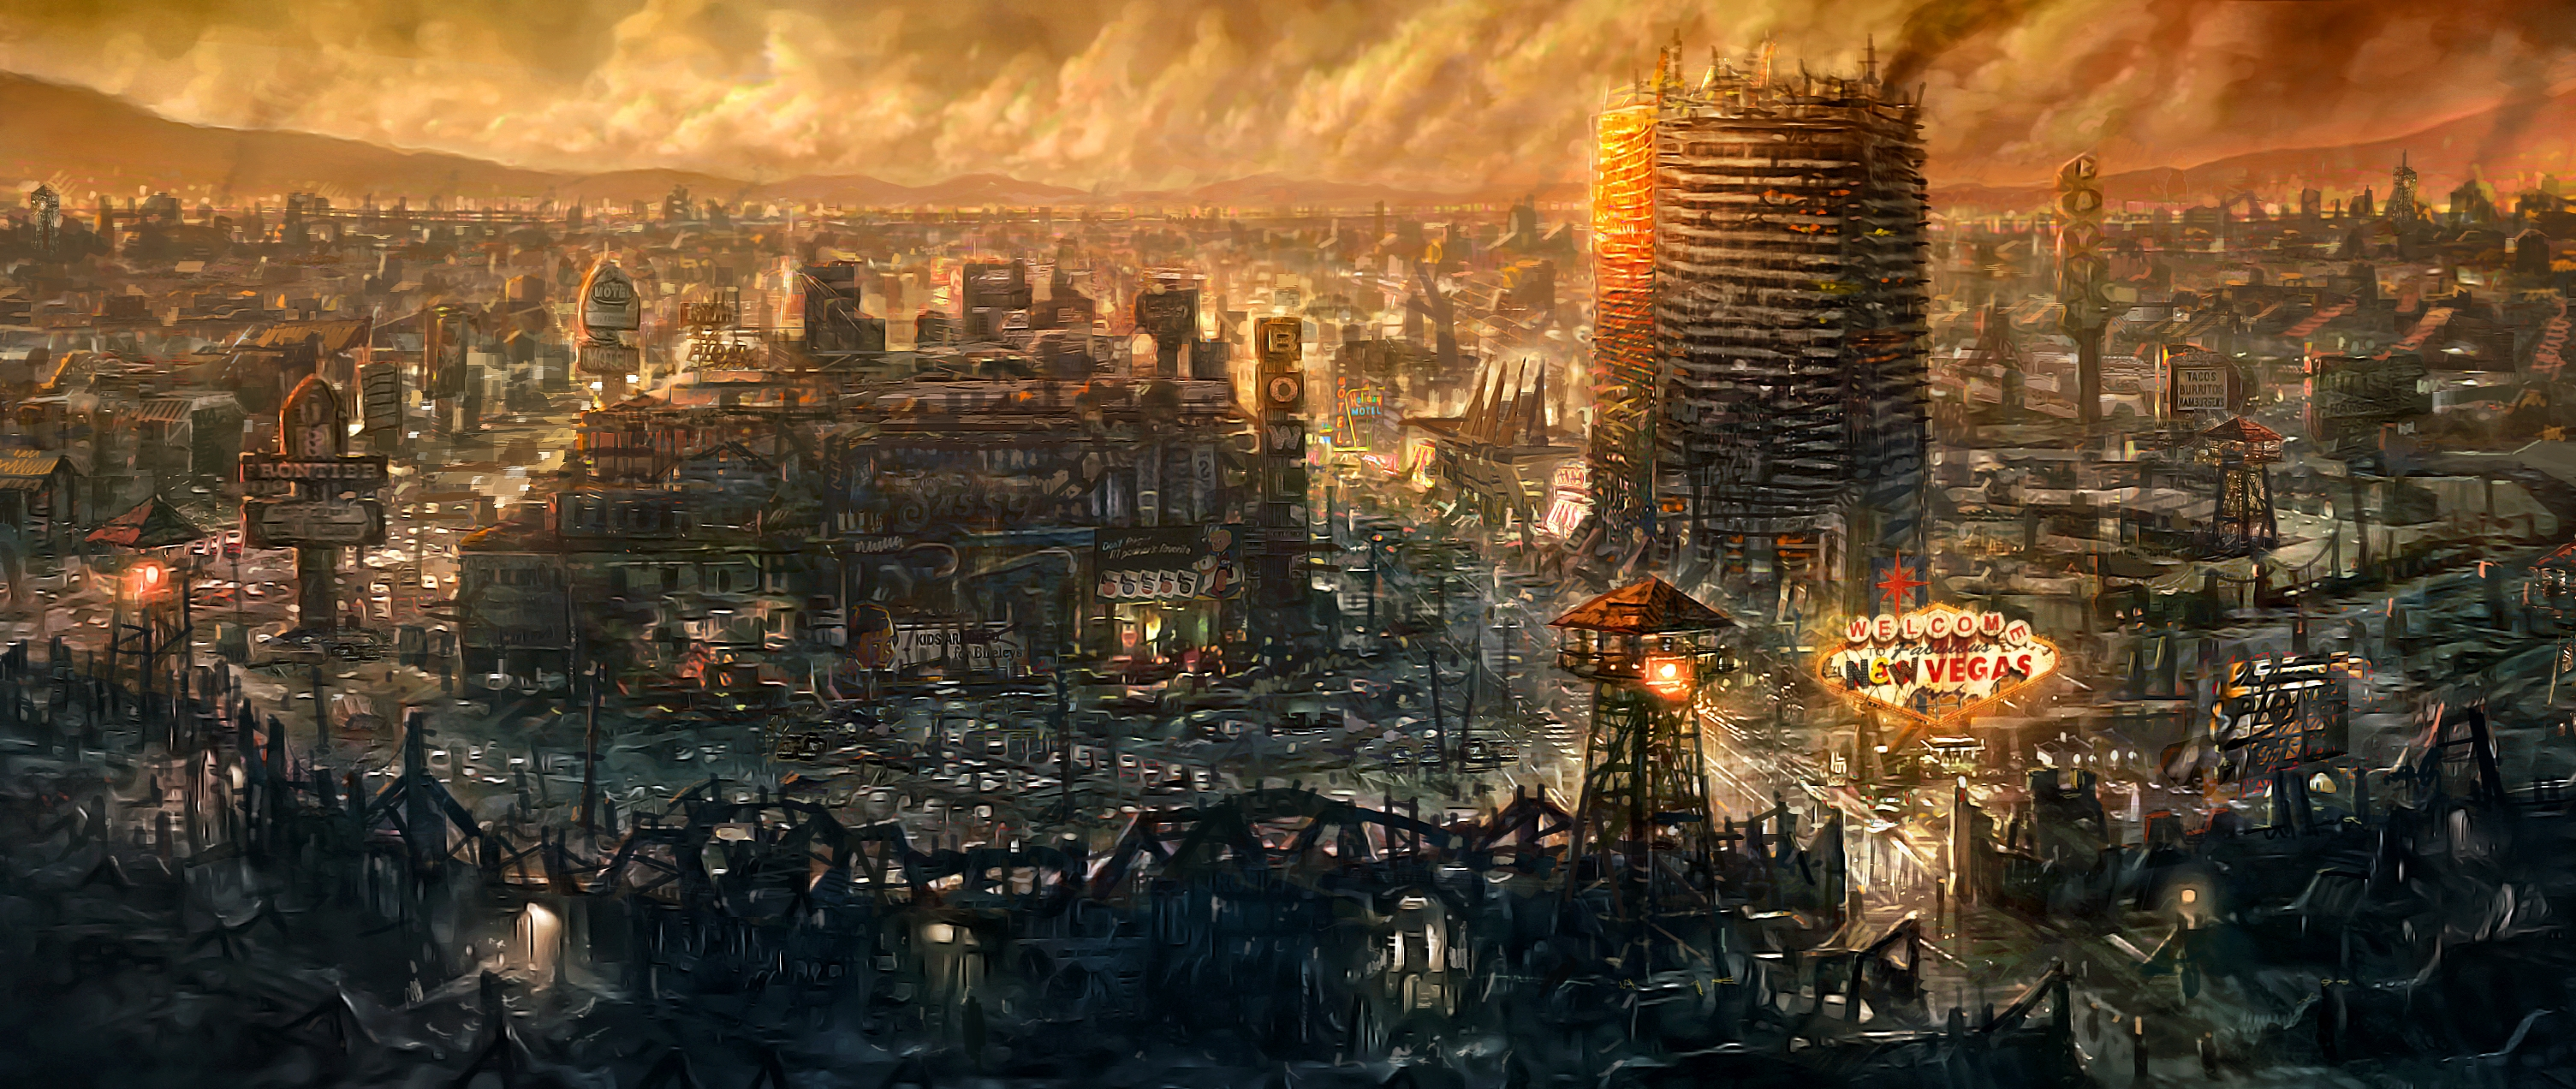 New Vegas Concept Art